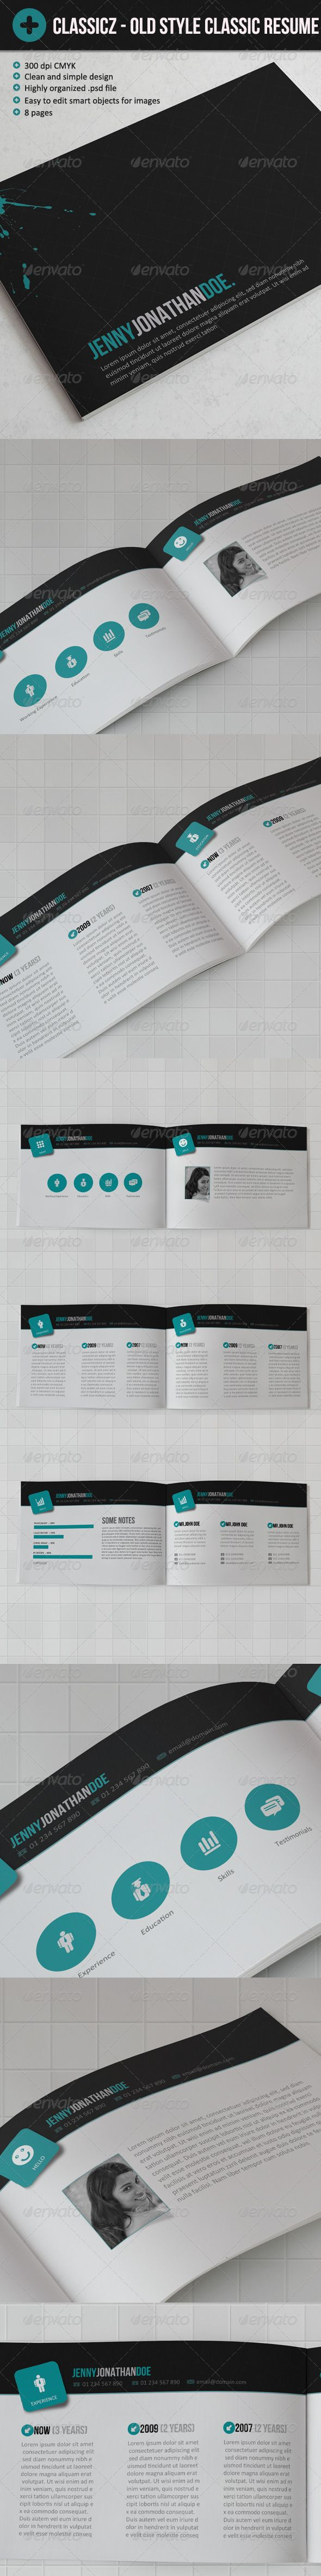 Best Cv Images On   Cv Design Template Design Resume